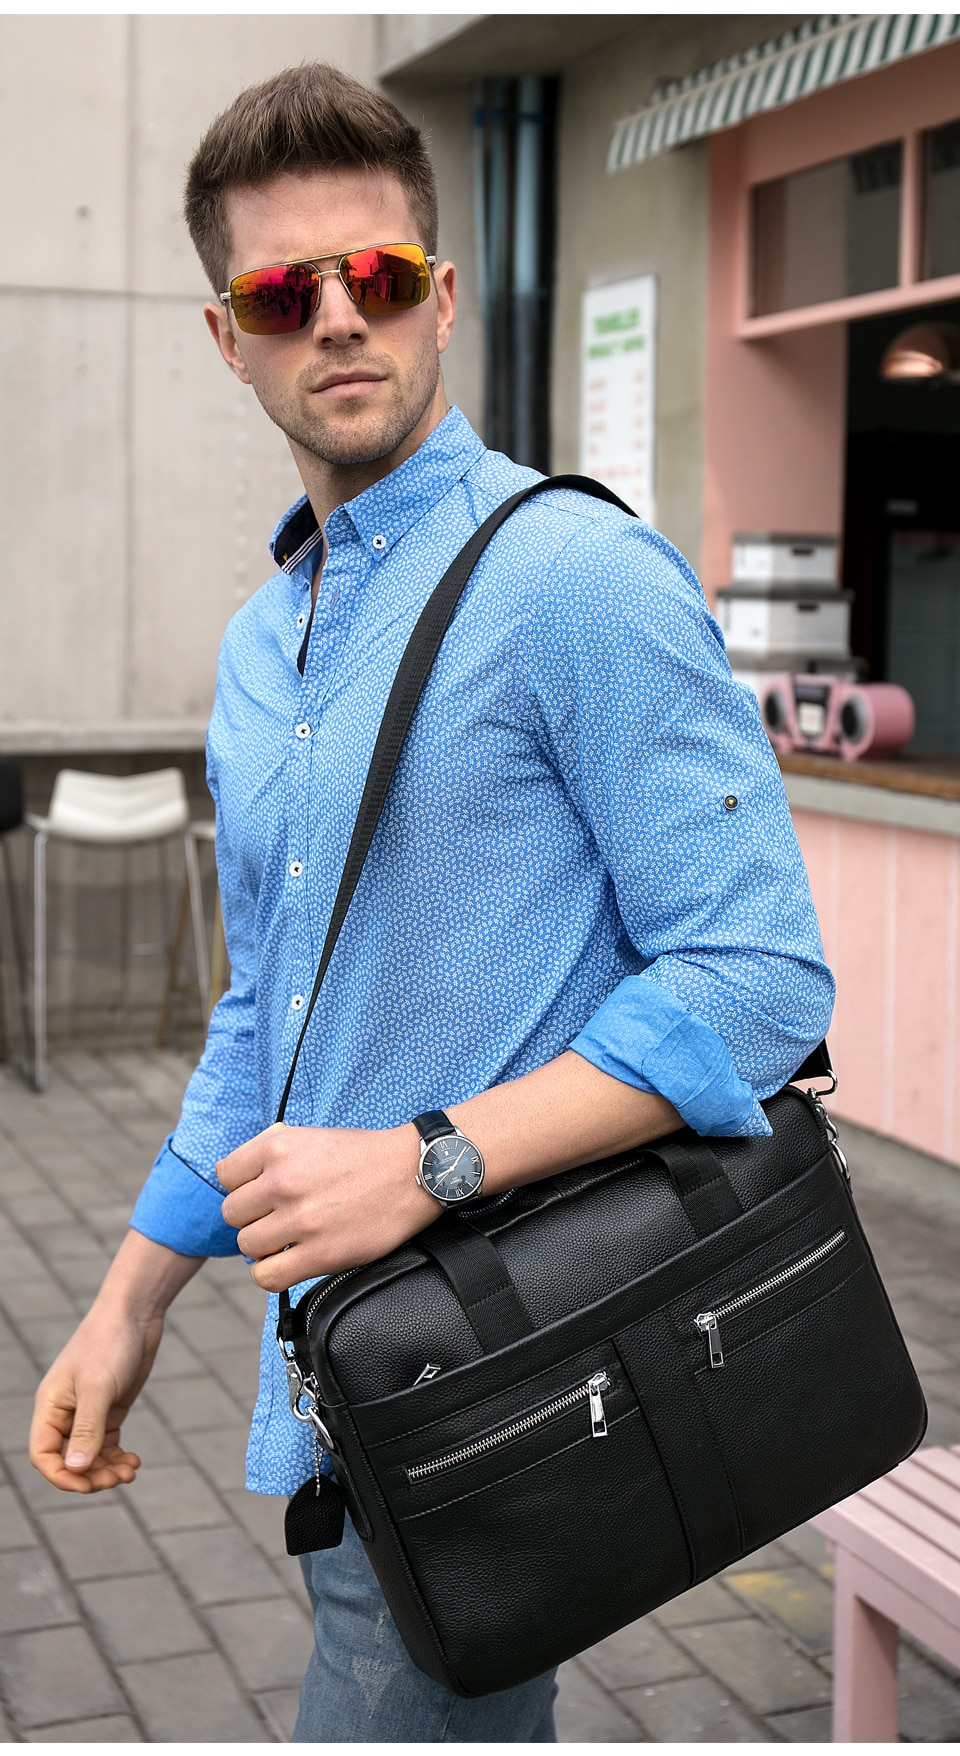 Briefcase for business men.